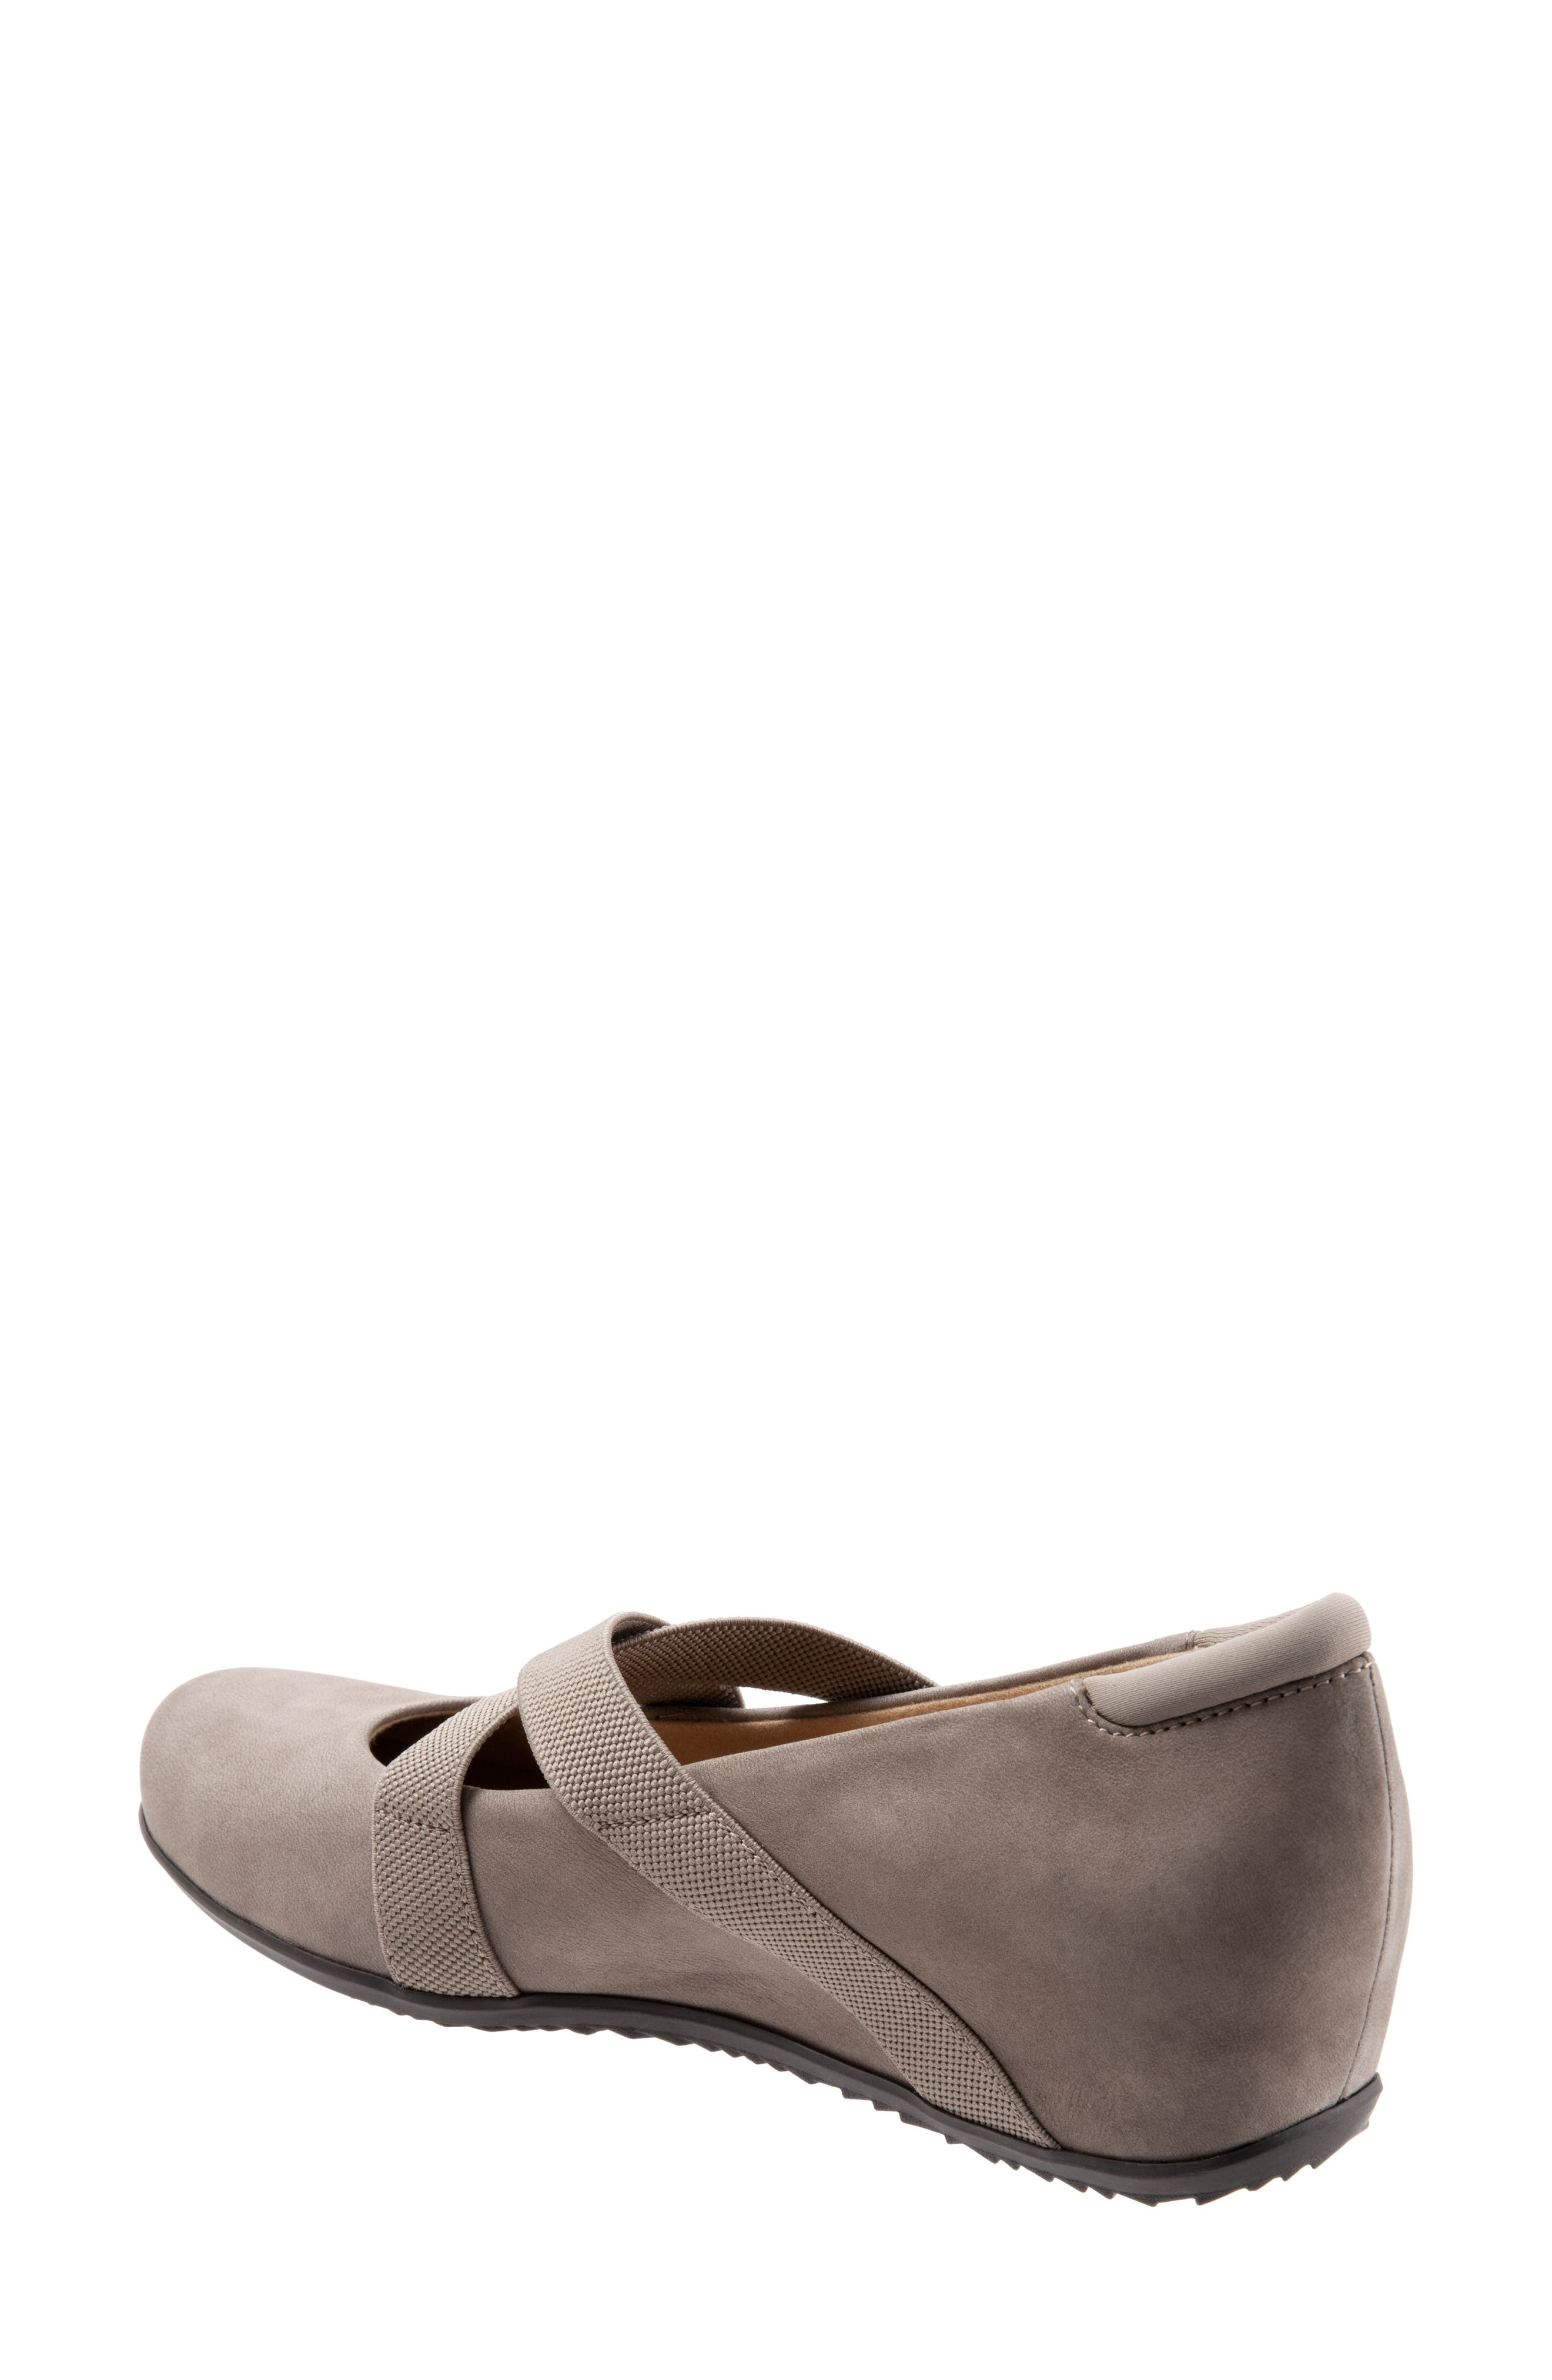 SOFTWALK<SUP>®</SUP>, Waverly Mary Jane Wedge, Alternate thumbnail 2, color, TAUPE LEATHER